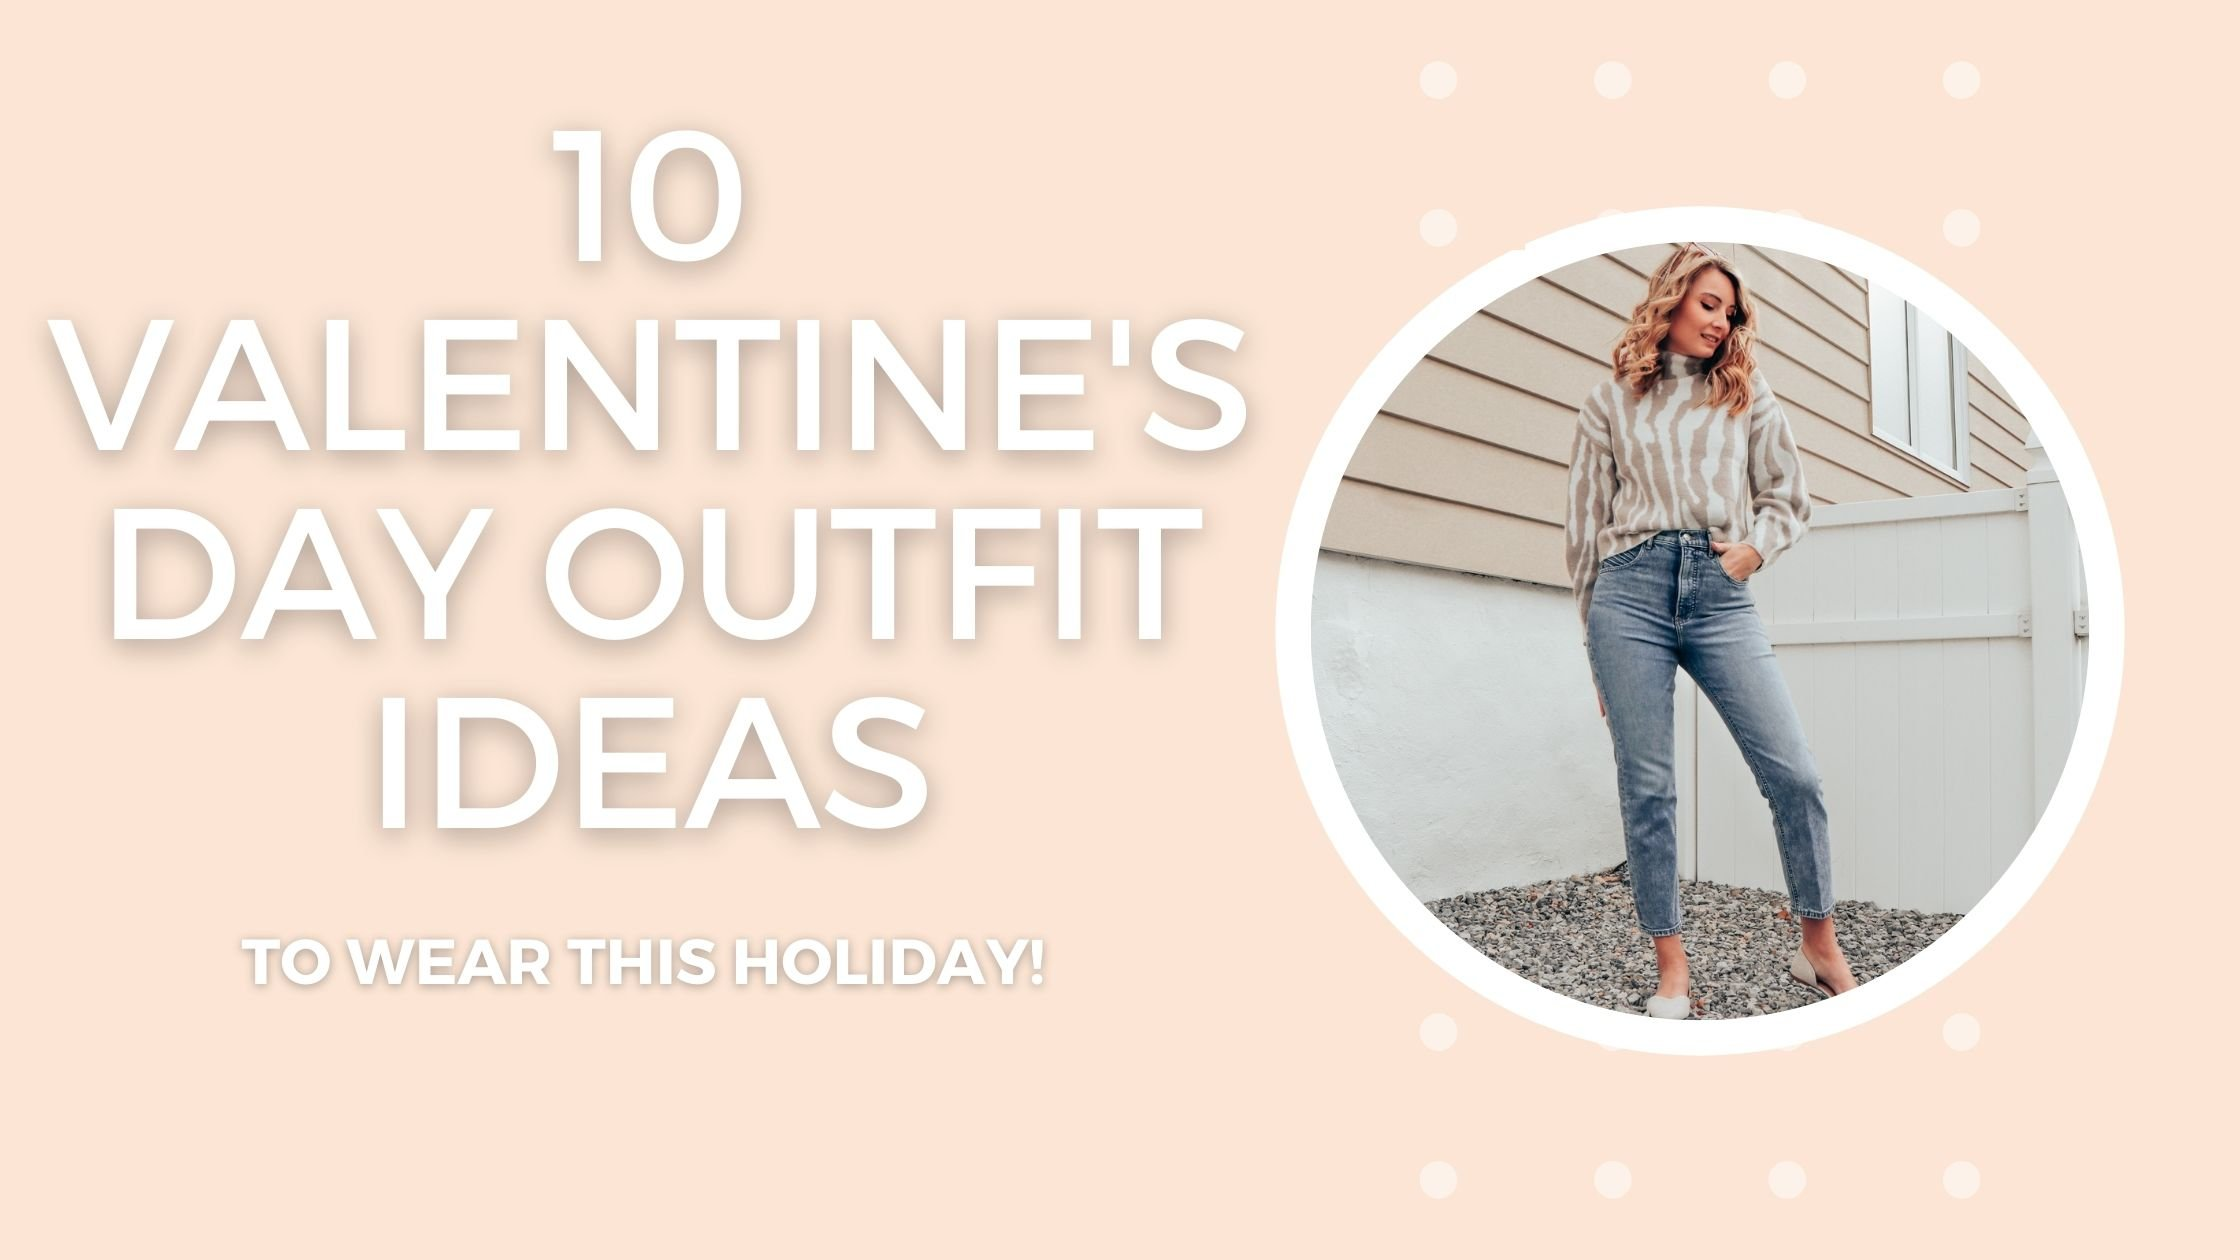 10 valentines day outfit ideas